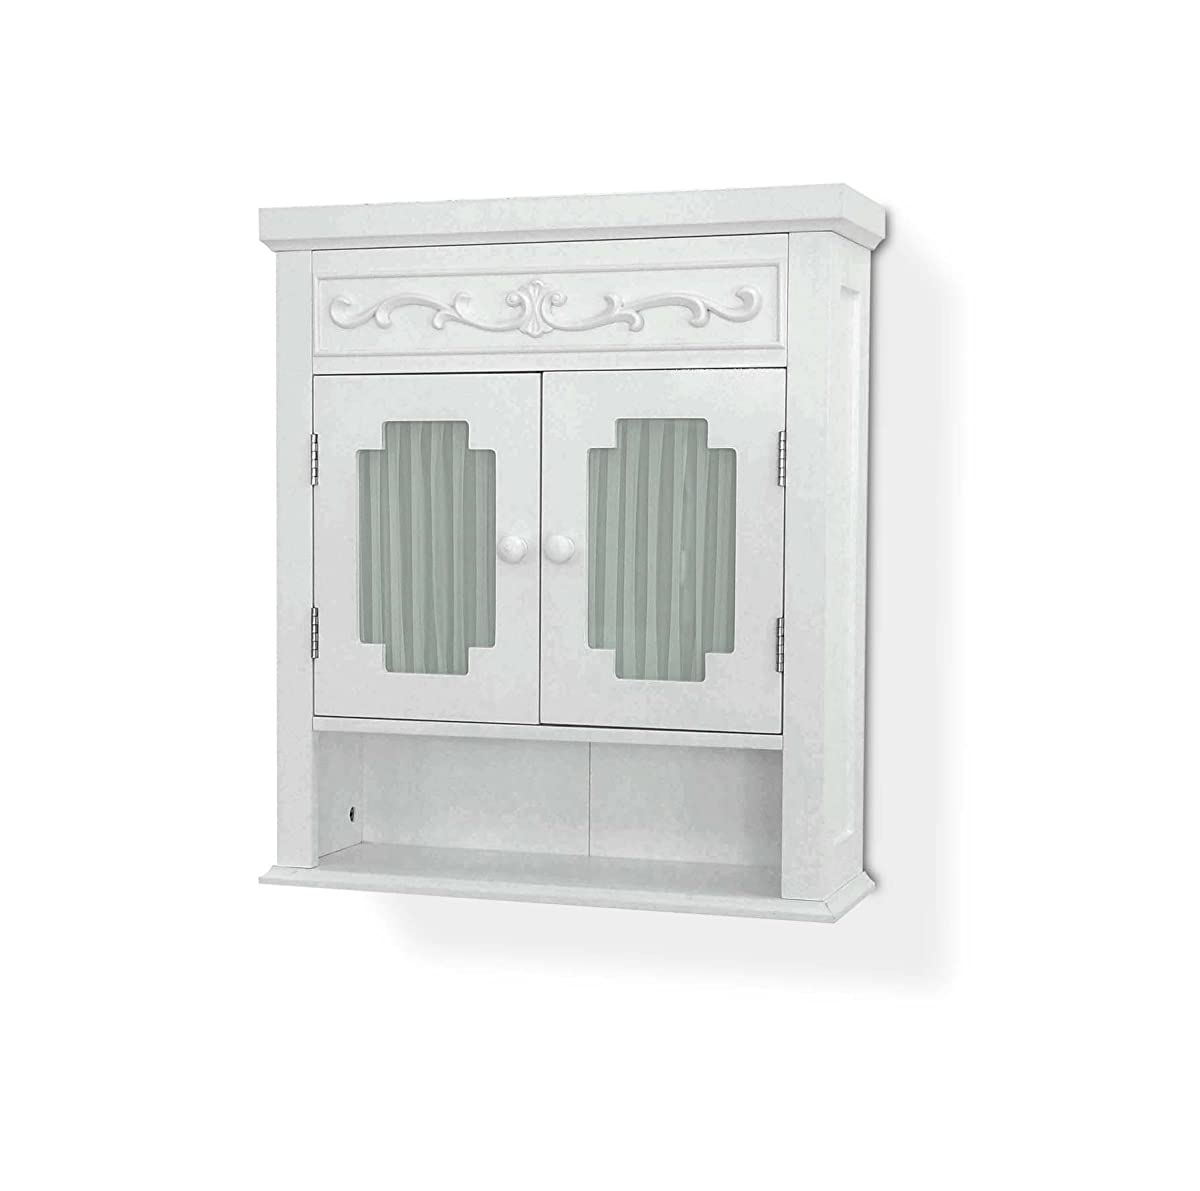 Elegant Home Fashions Lisbon Collection Shelved Wall Cabinet with Glass-Paneled Doors, White